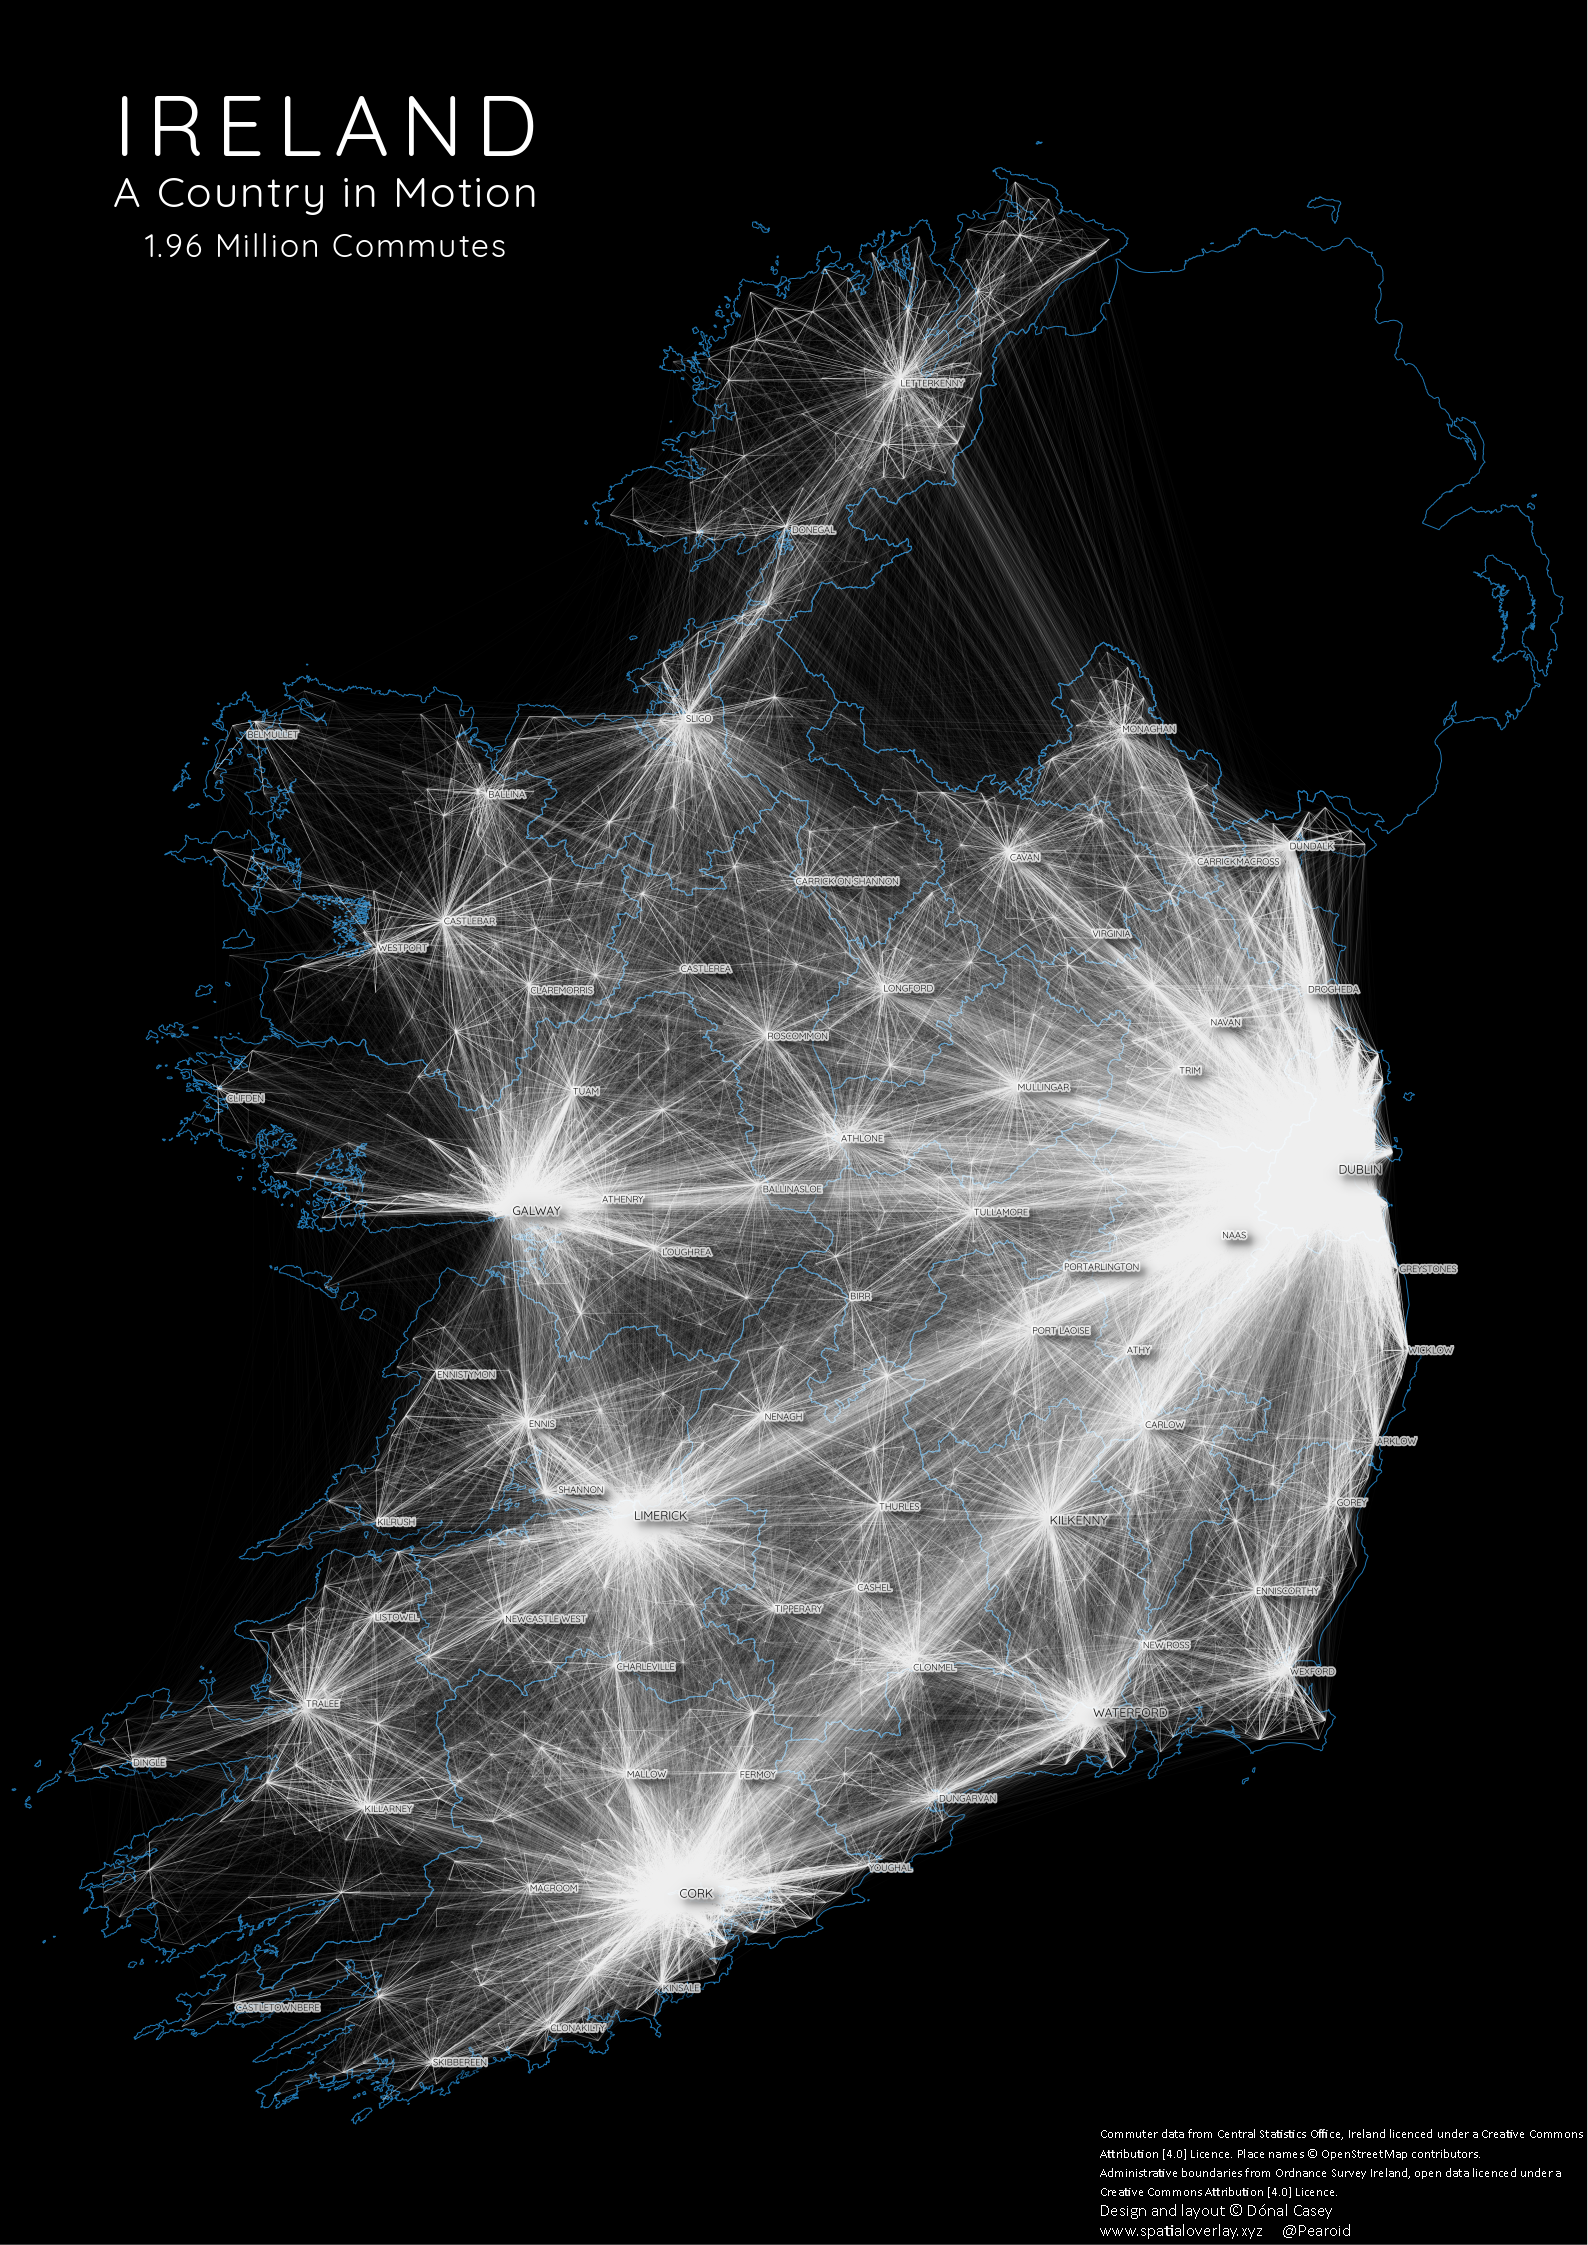 Ireland-A Country in Motion